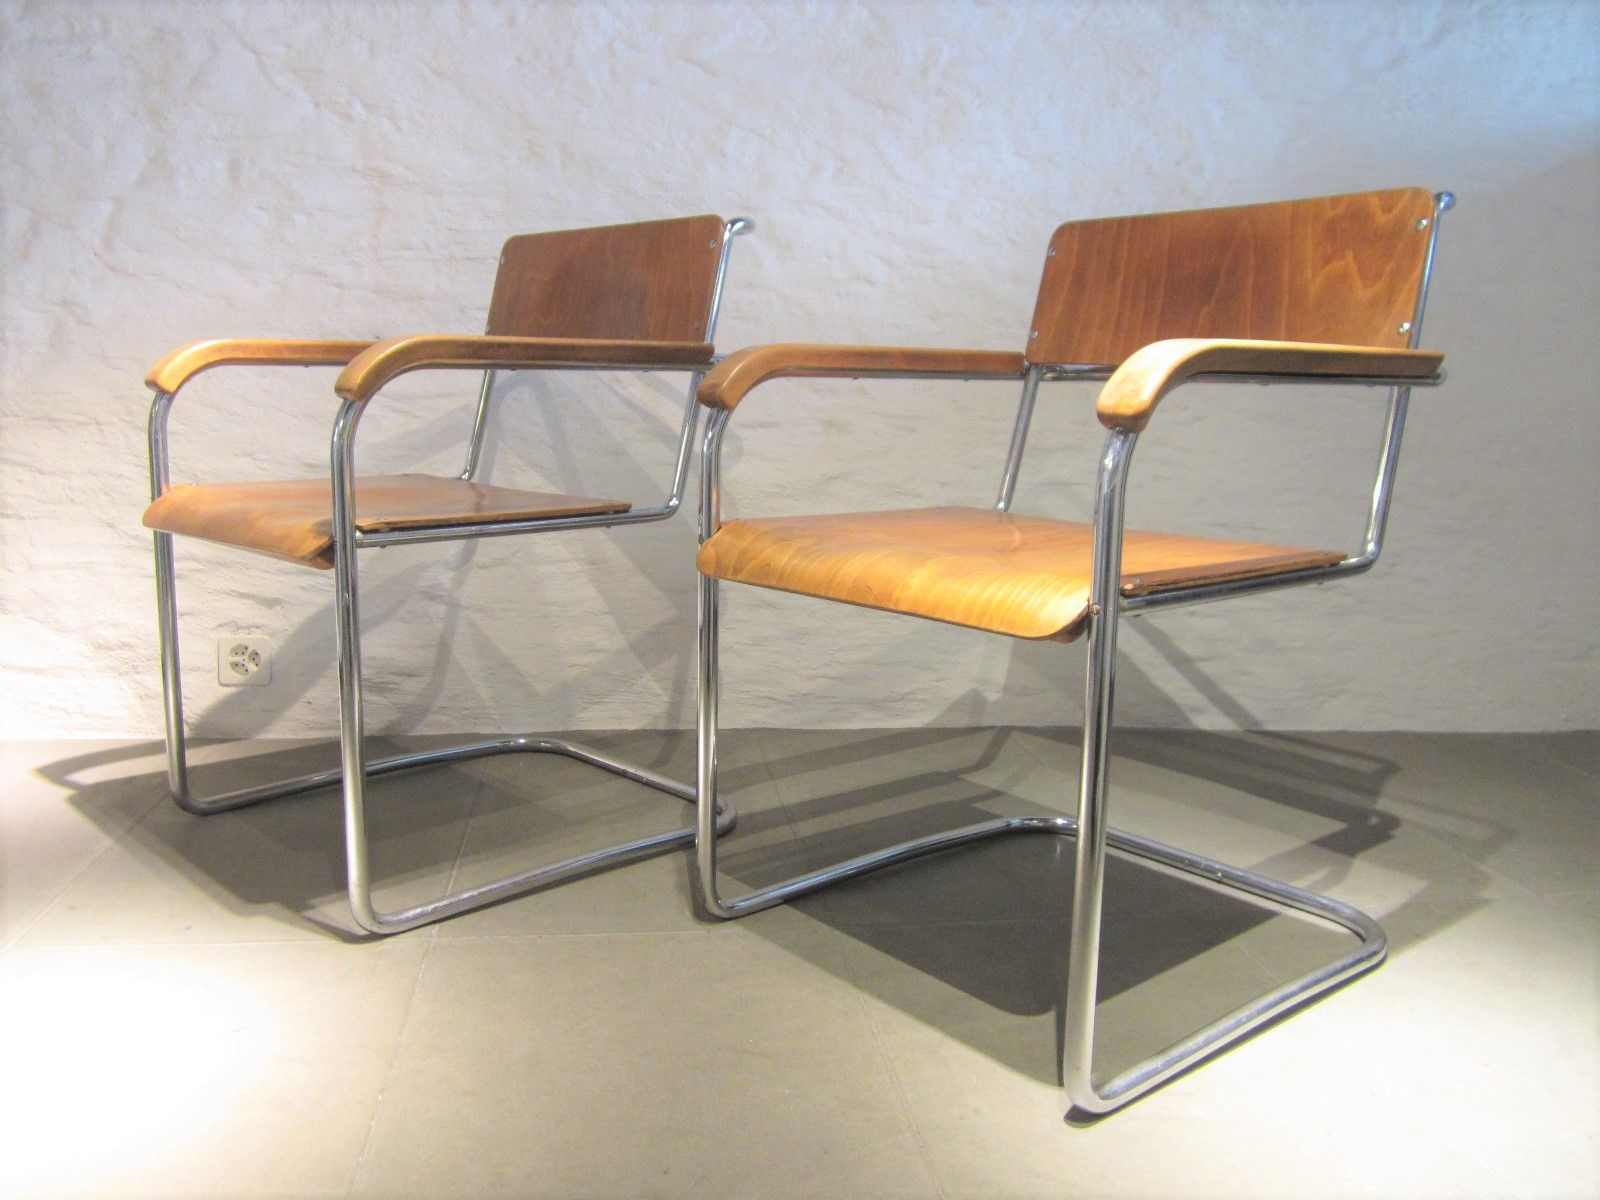 Vintage German B34 Cantilever Chairs by Marcel Breuer Set of 2